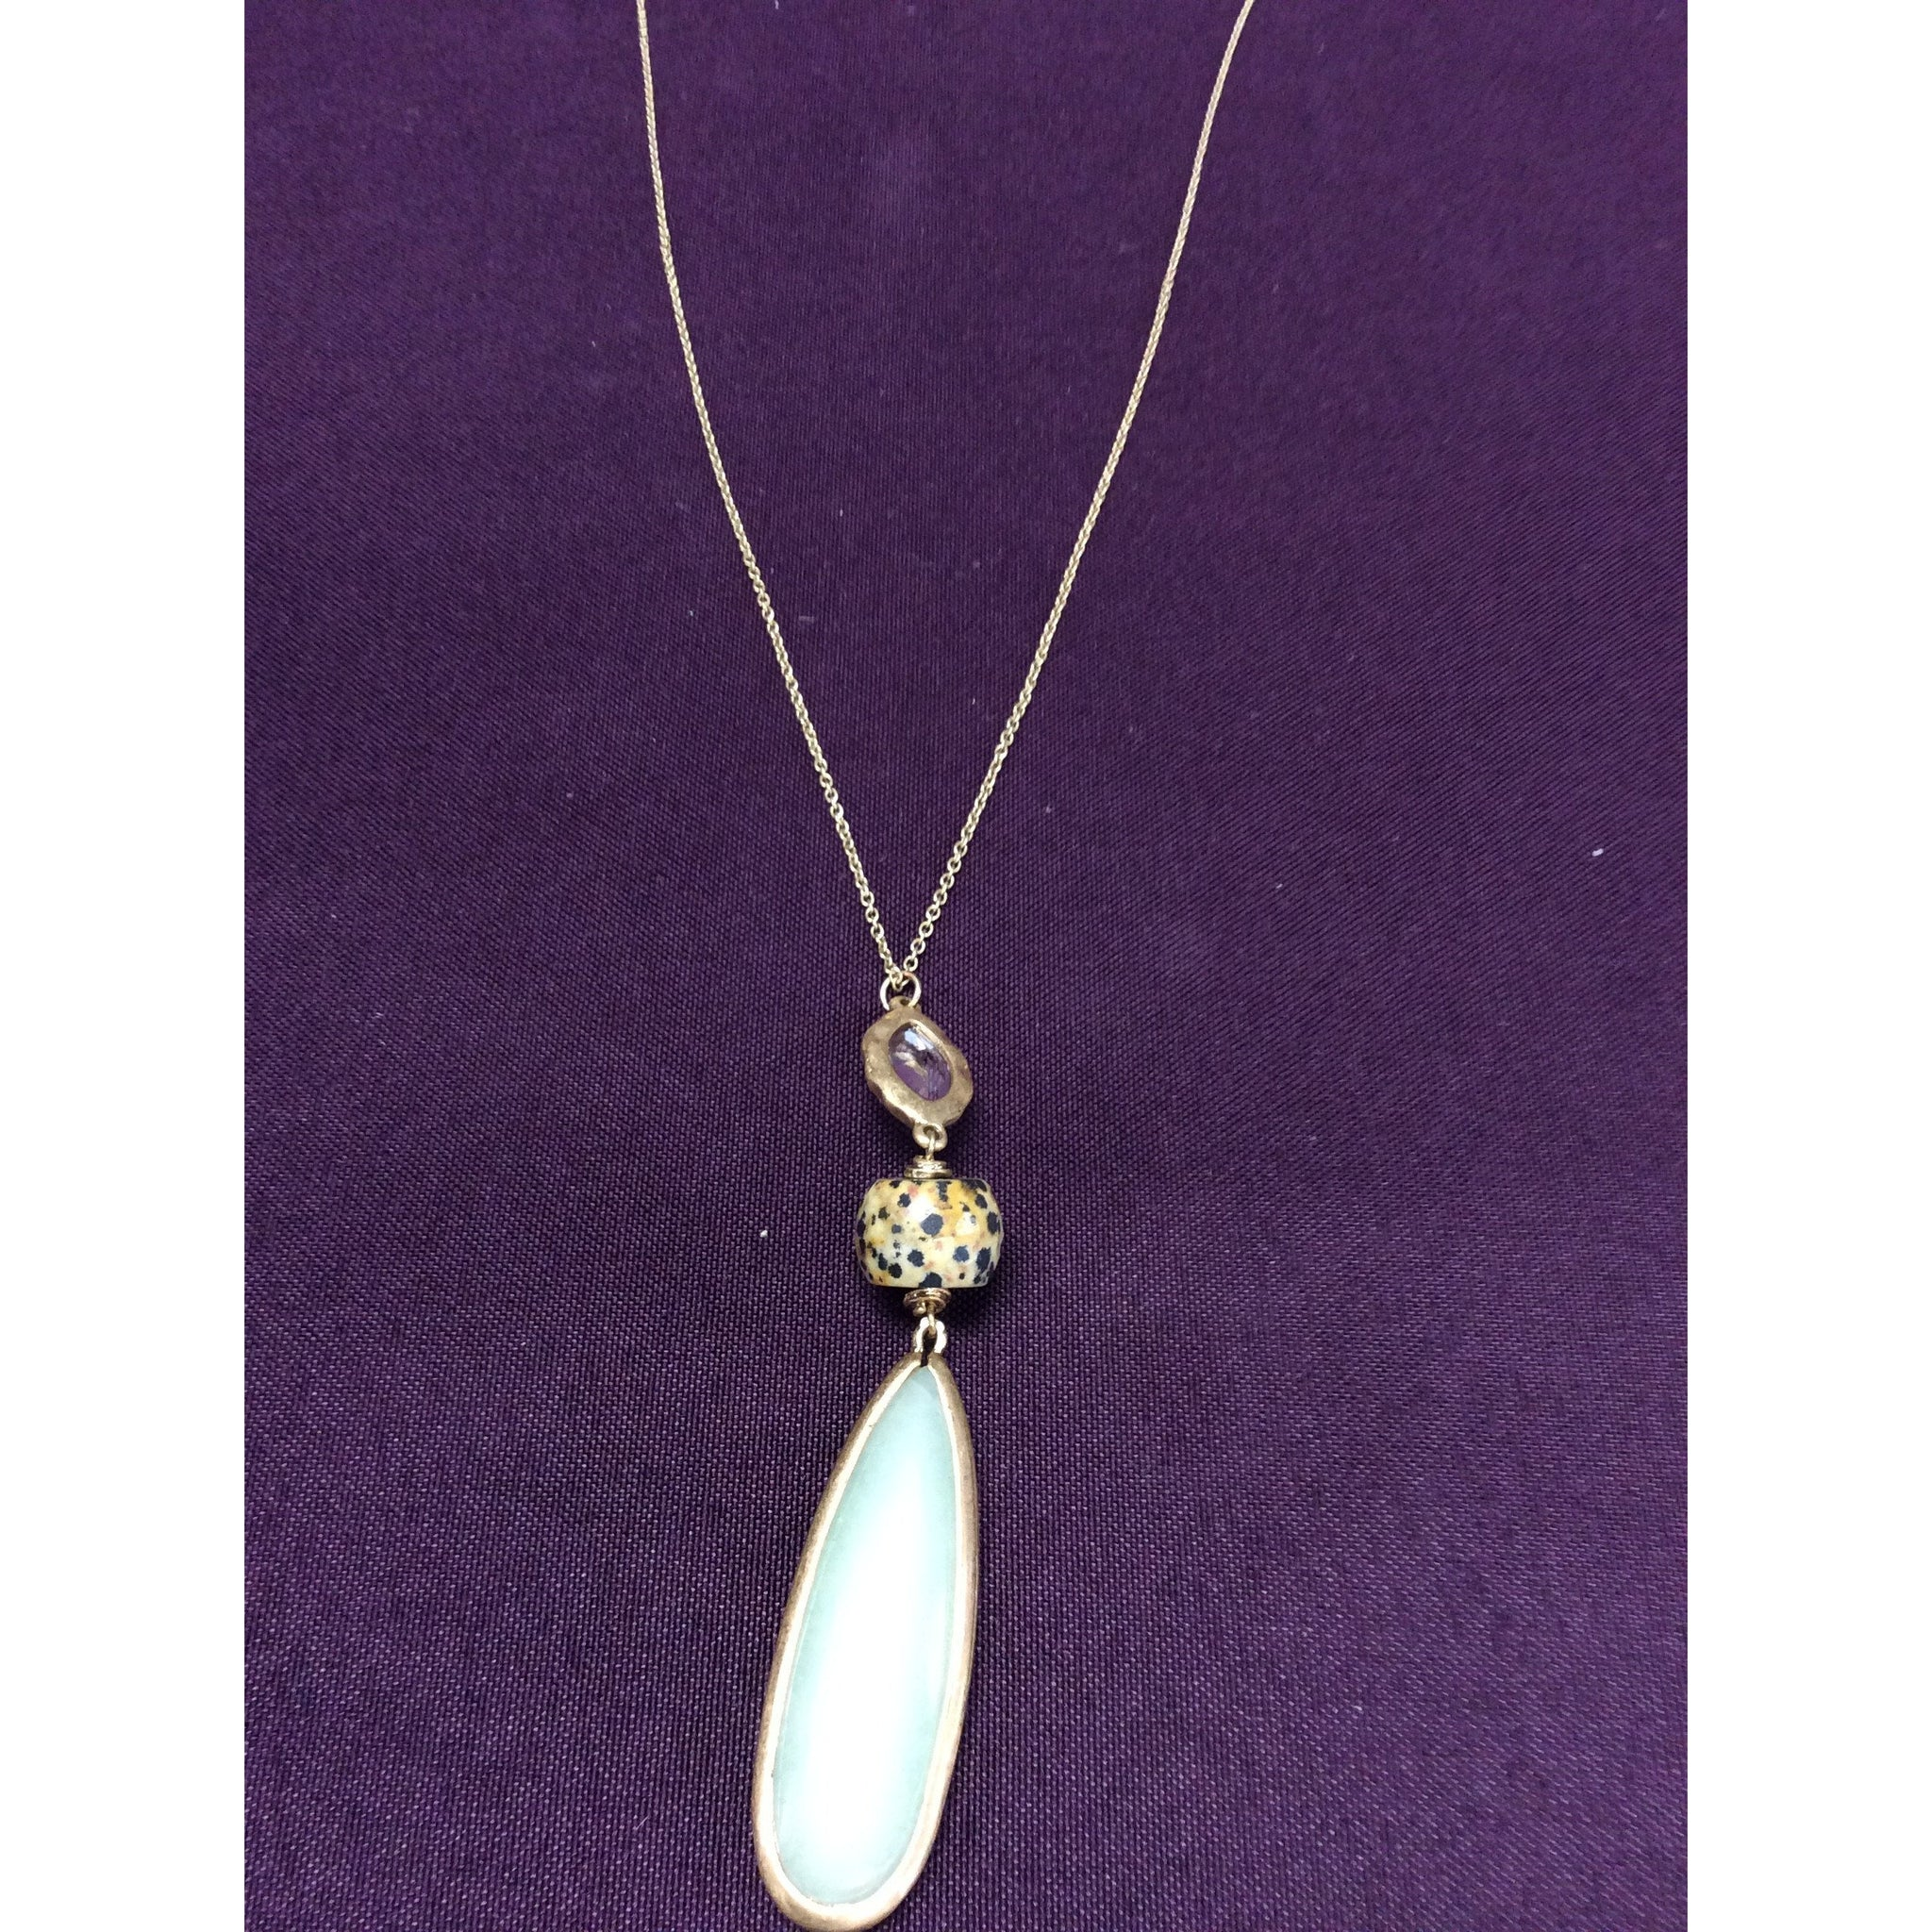 Amazonite Teardrop Gemstone Necklaces